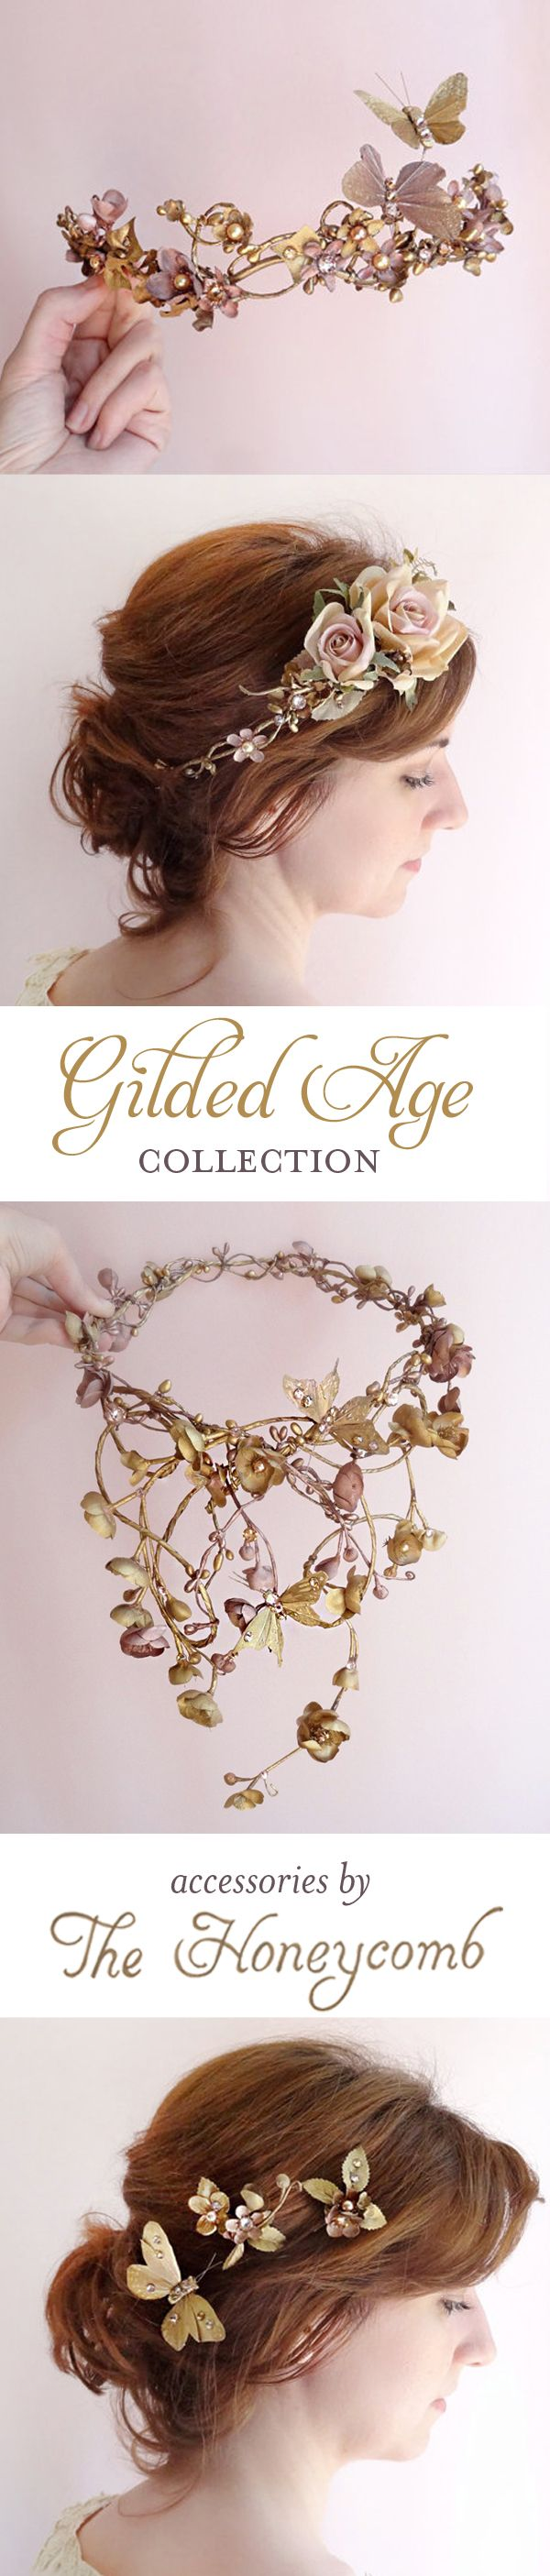 Bronze metallic hair accessories with gilded butterflies and Swarovski crystals and pearls. Luxurious statement headpieces for couture weddings, by The Honeycomb: http://thehoneycombshop.com/product-category/gilded-age/